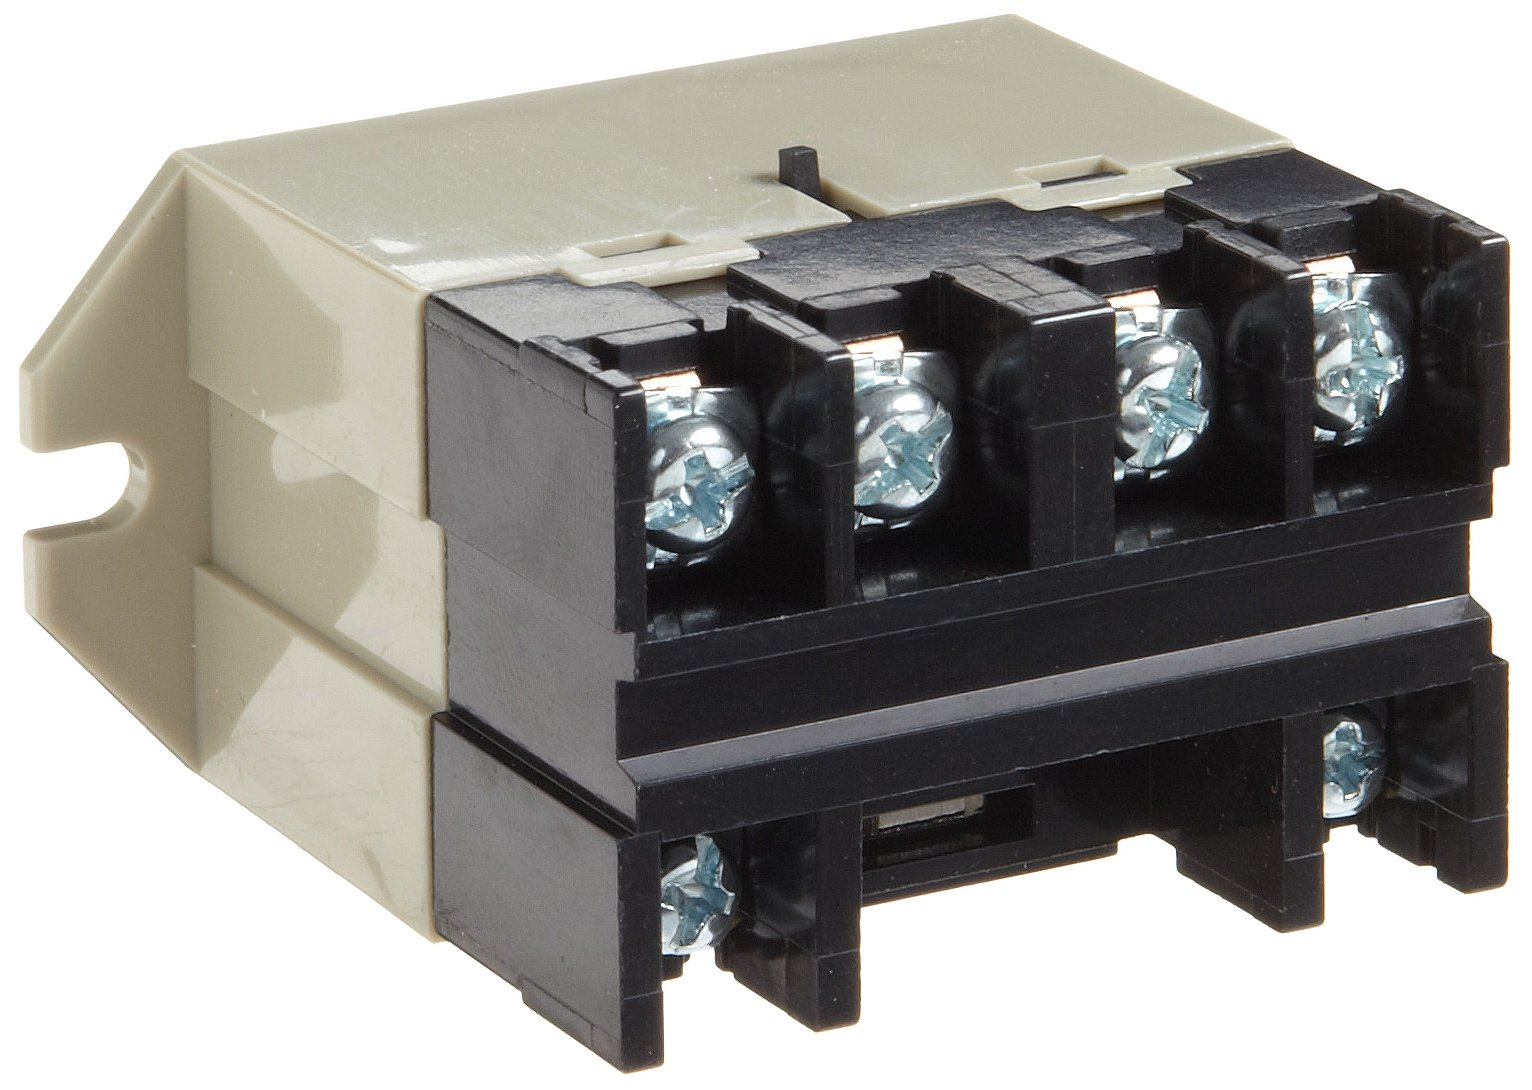 Omron G7L-2A-BUBJ-CB AC24 General Purpose Relay With Test Button, Class B Insulation, Screw Terminal, Upper Bracket Mounting, Double Pole Single Throw Normally Open Contacts, 71 mA Rated Load Current, 24 VAC Rated Load Voltage